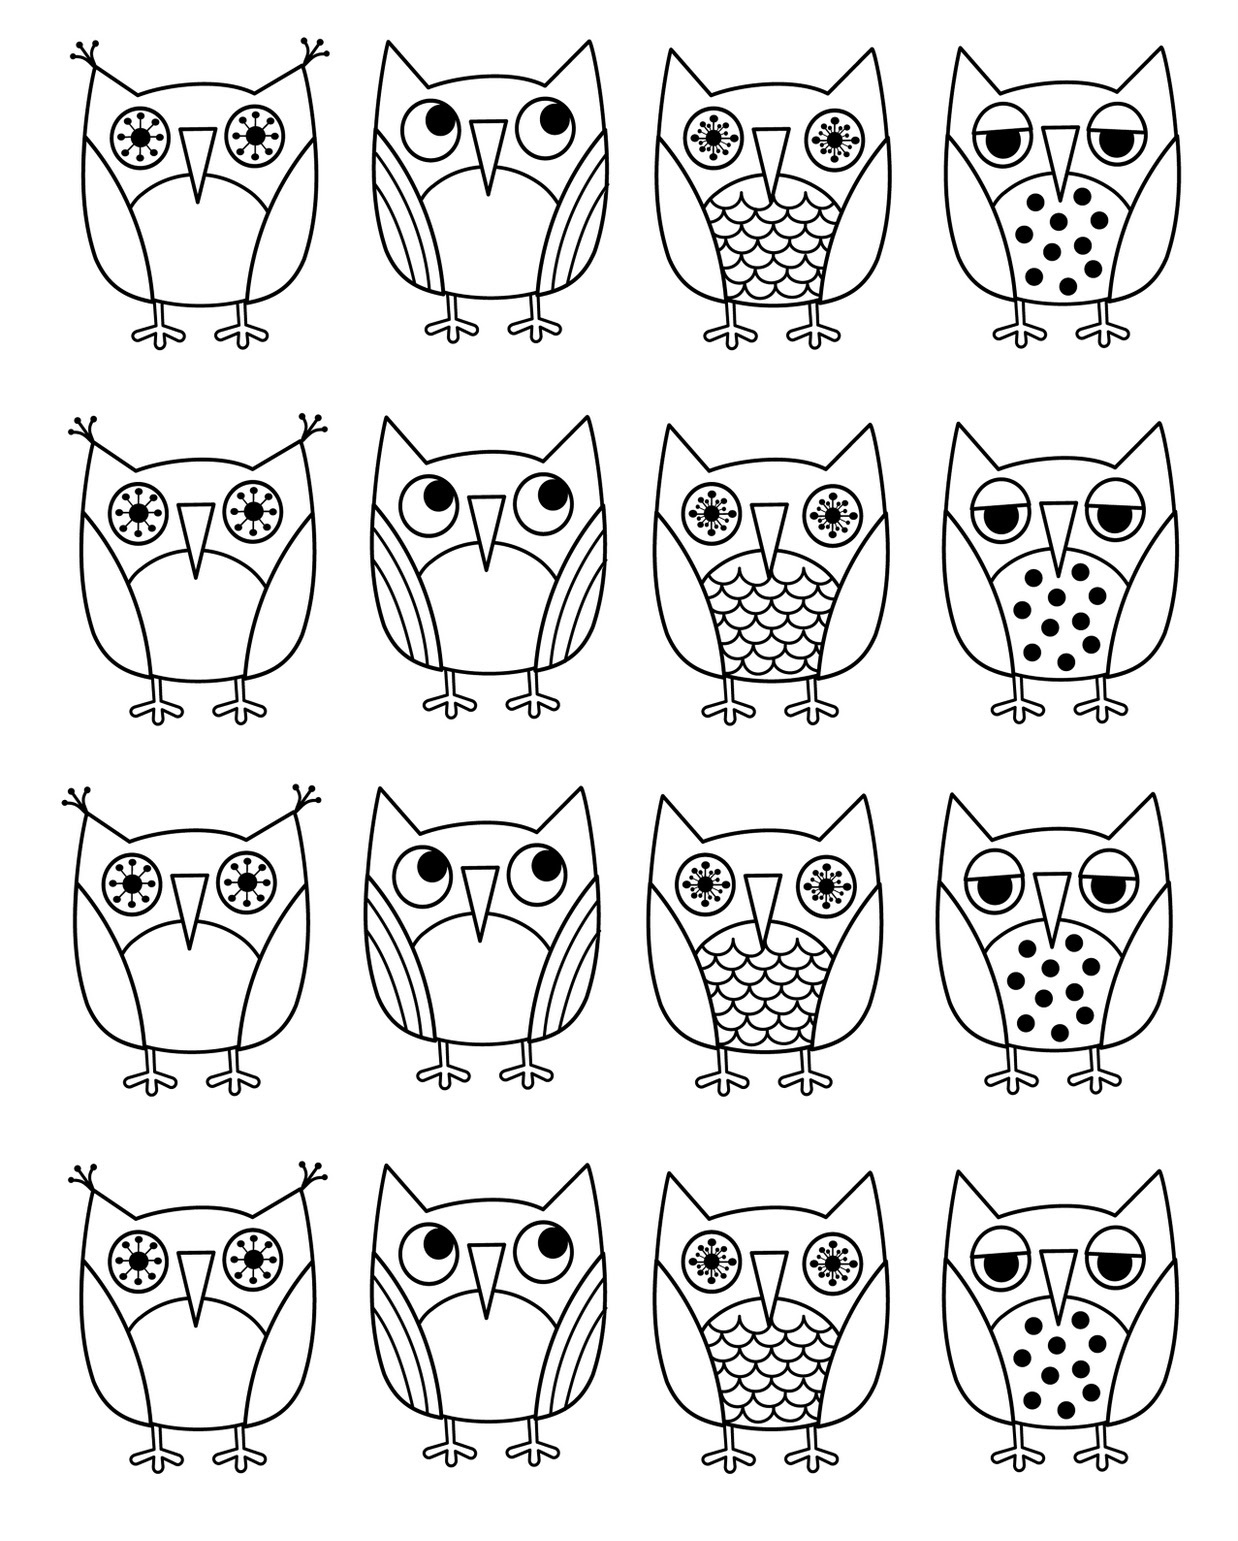 Owl coloring pages free - Coloring Pages Of Owls For Kids